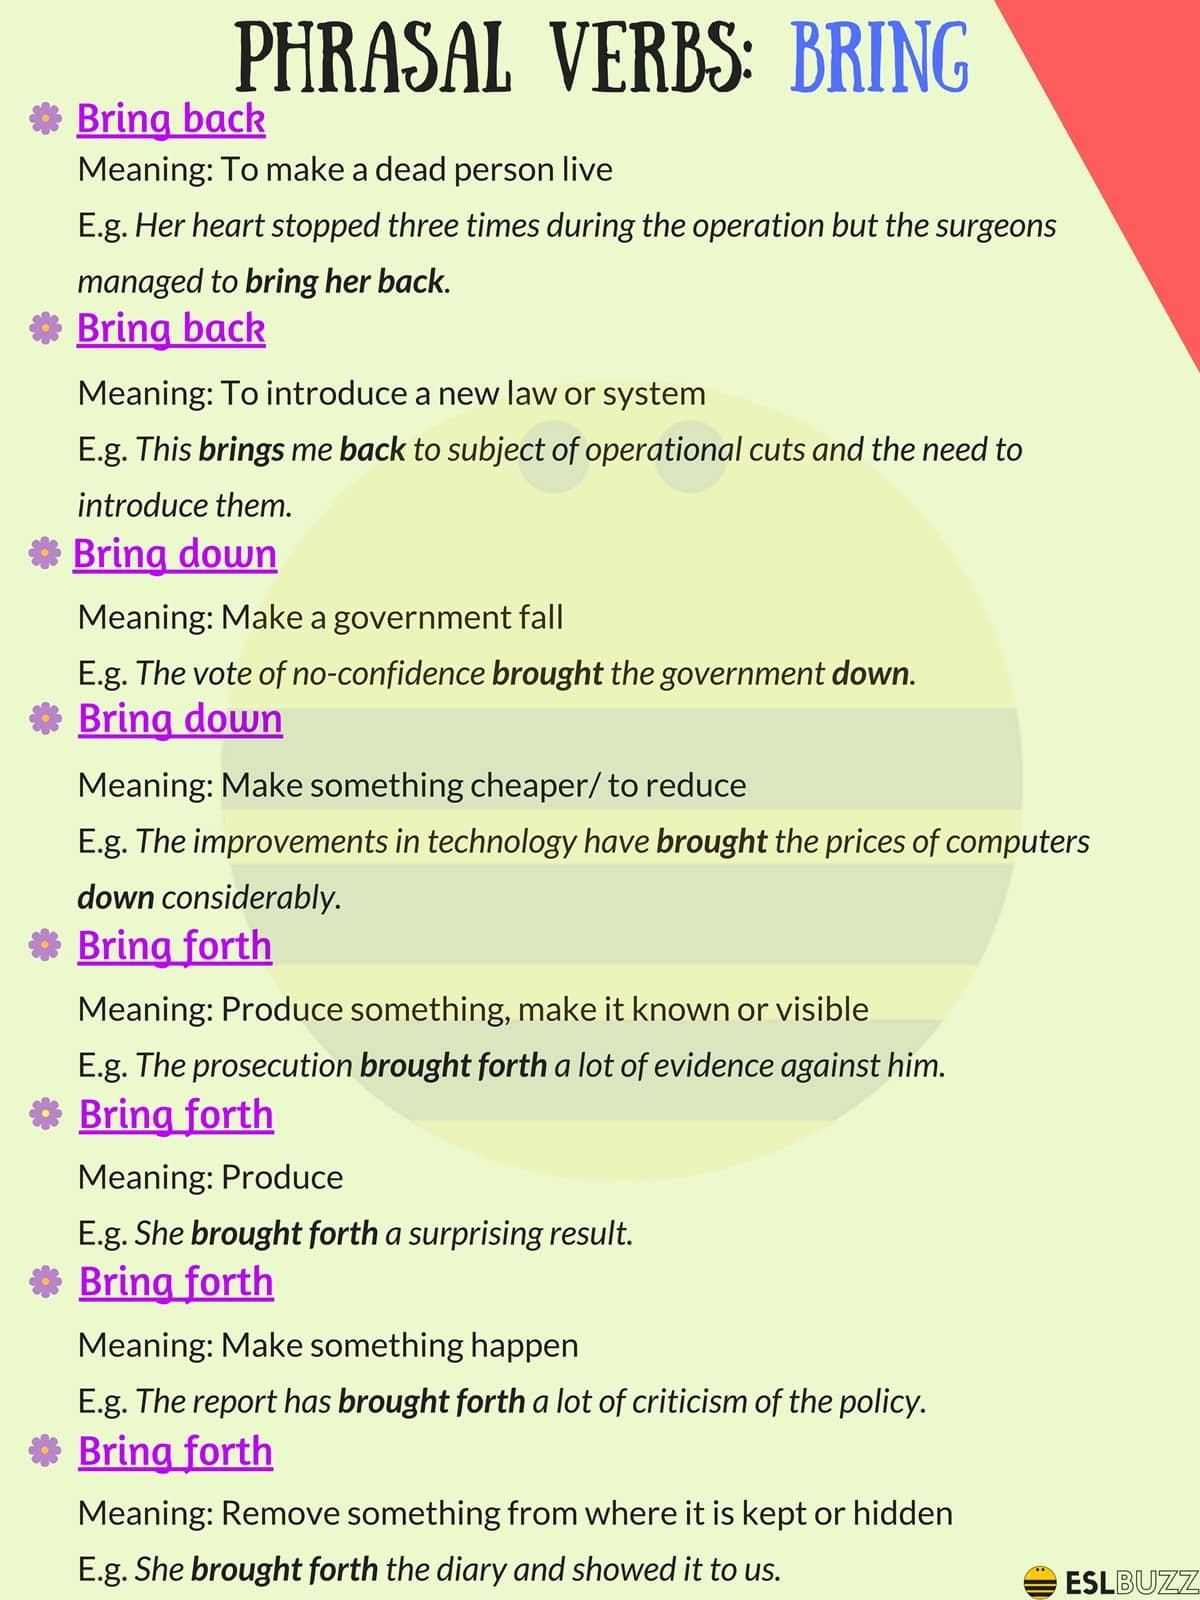 100+ of the Most Useful Phrasal Verbs in English (With Meaning & Examples) 11